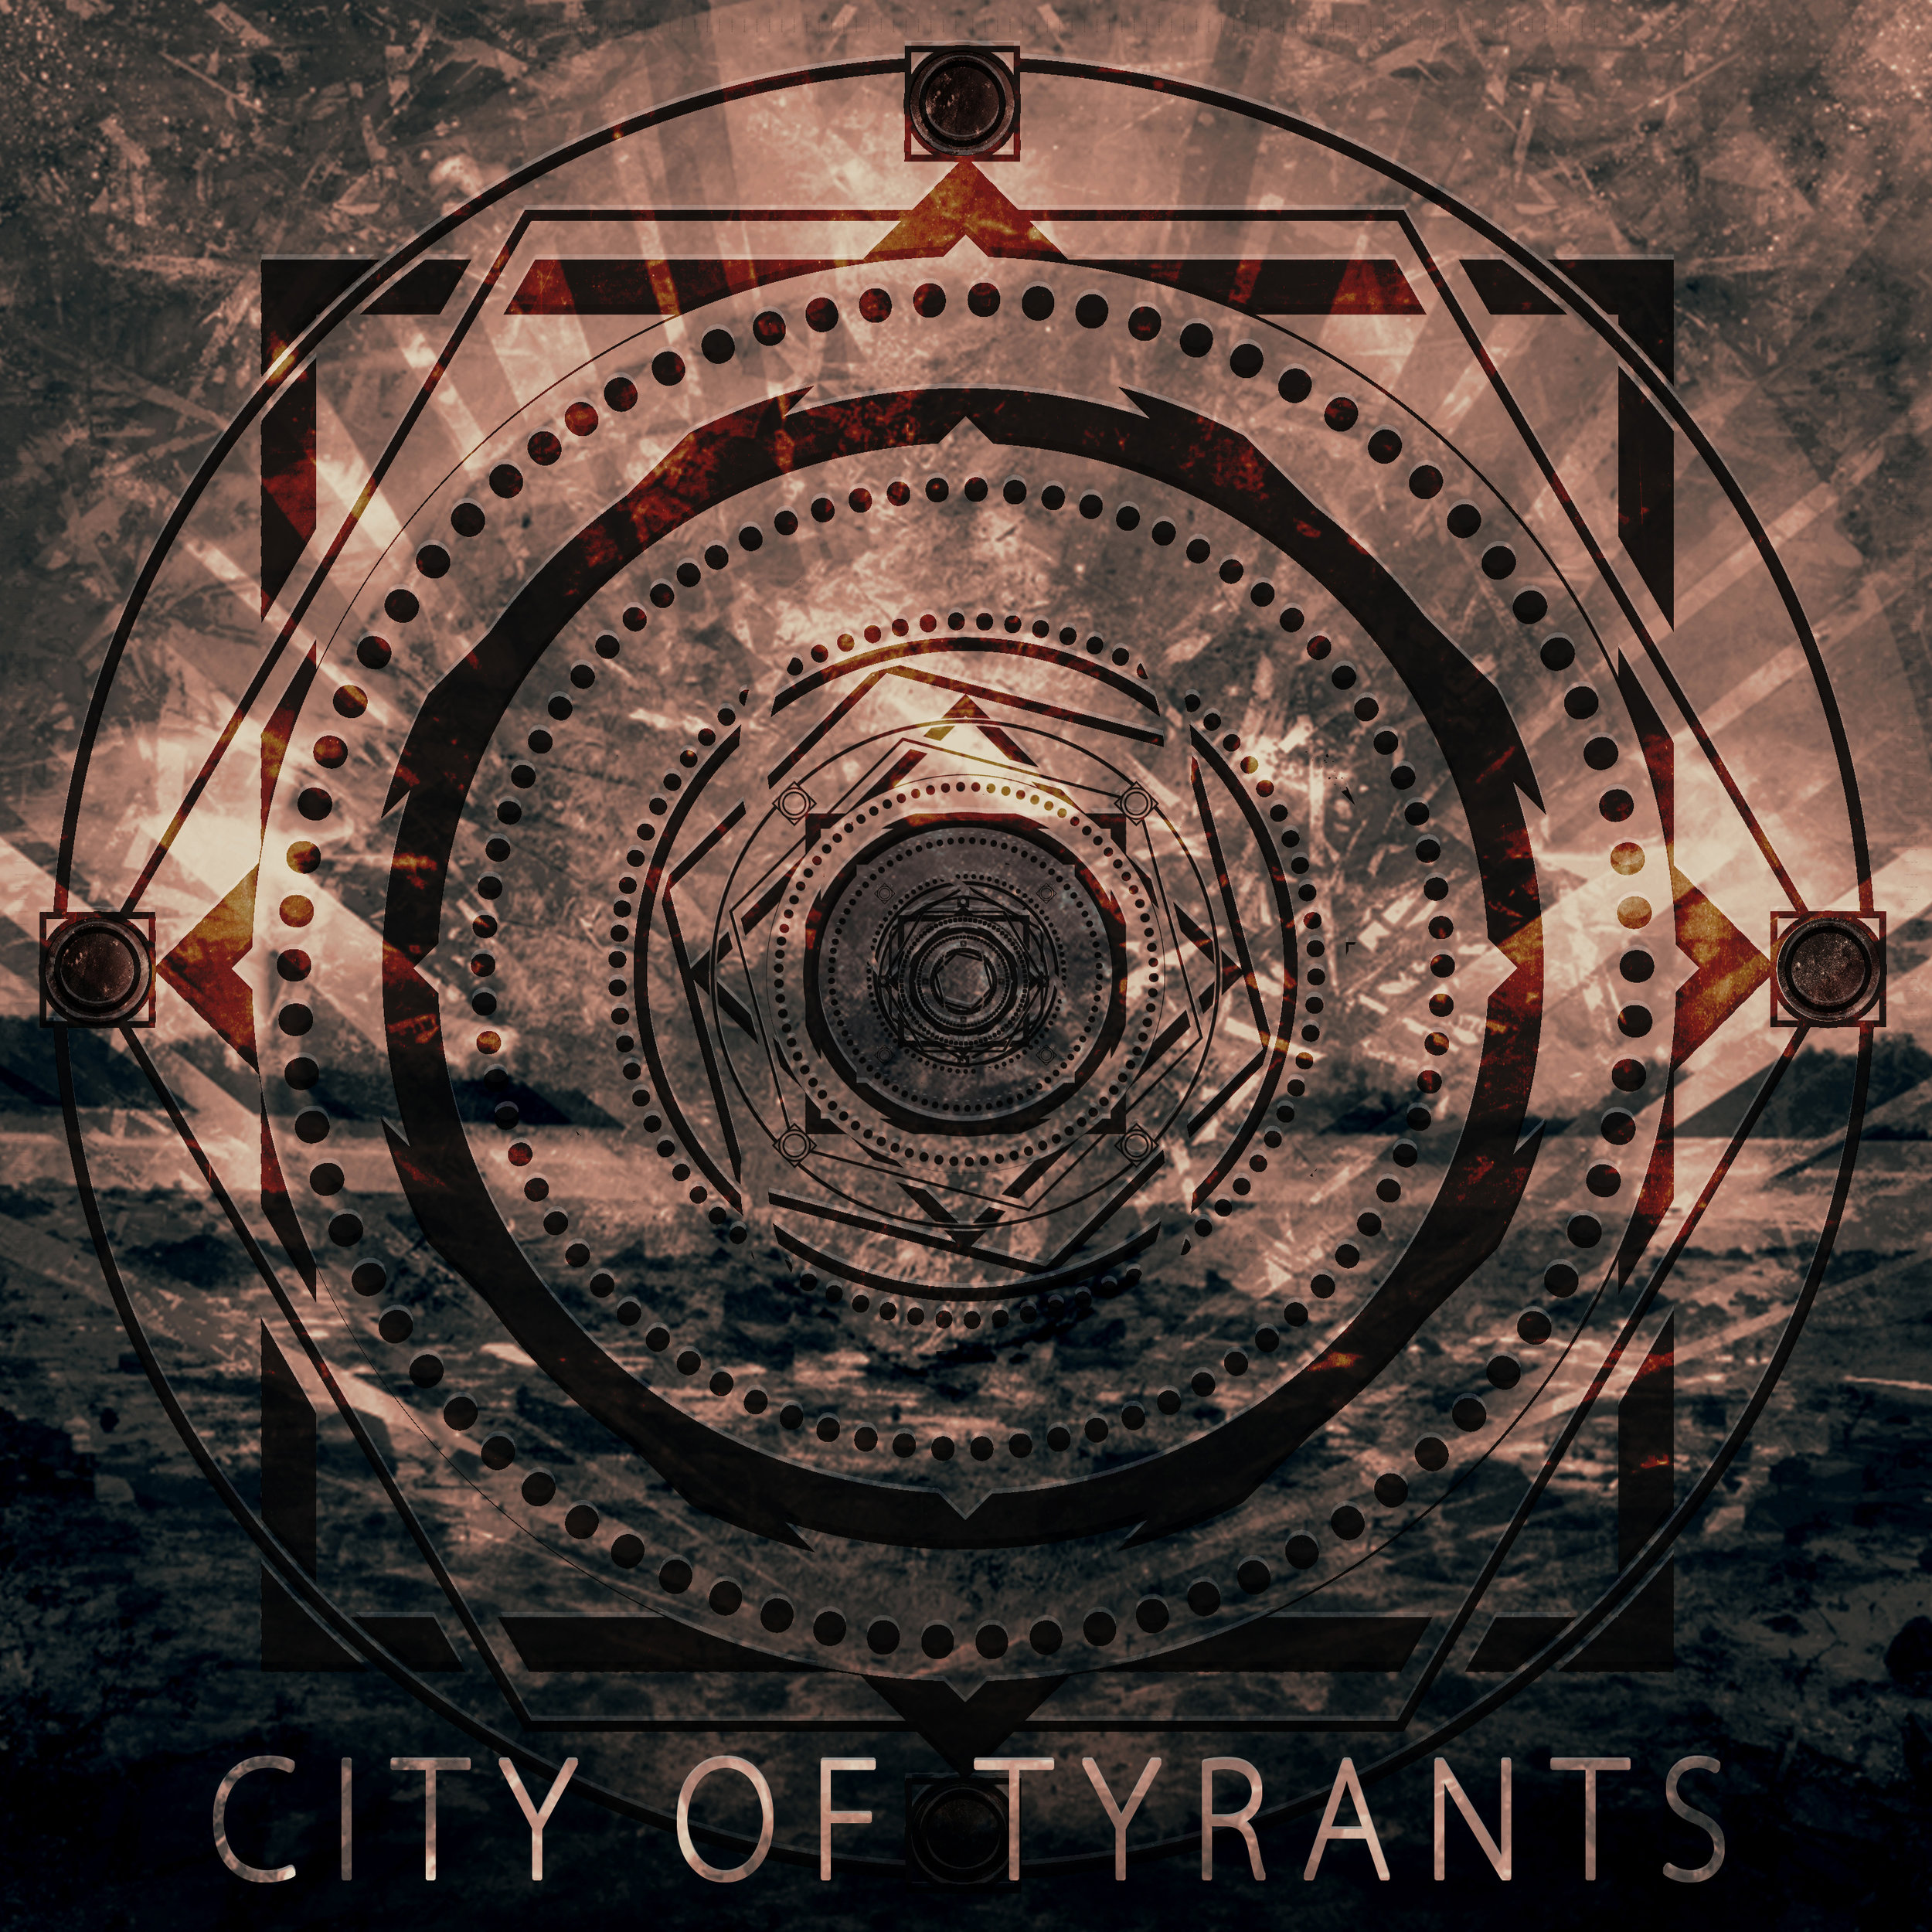 City Of Tyrants - Album Artwork